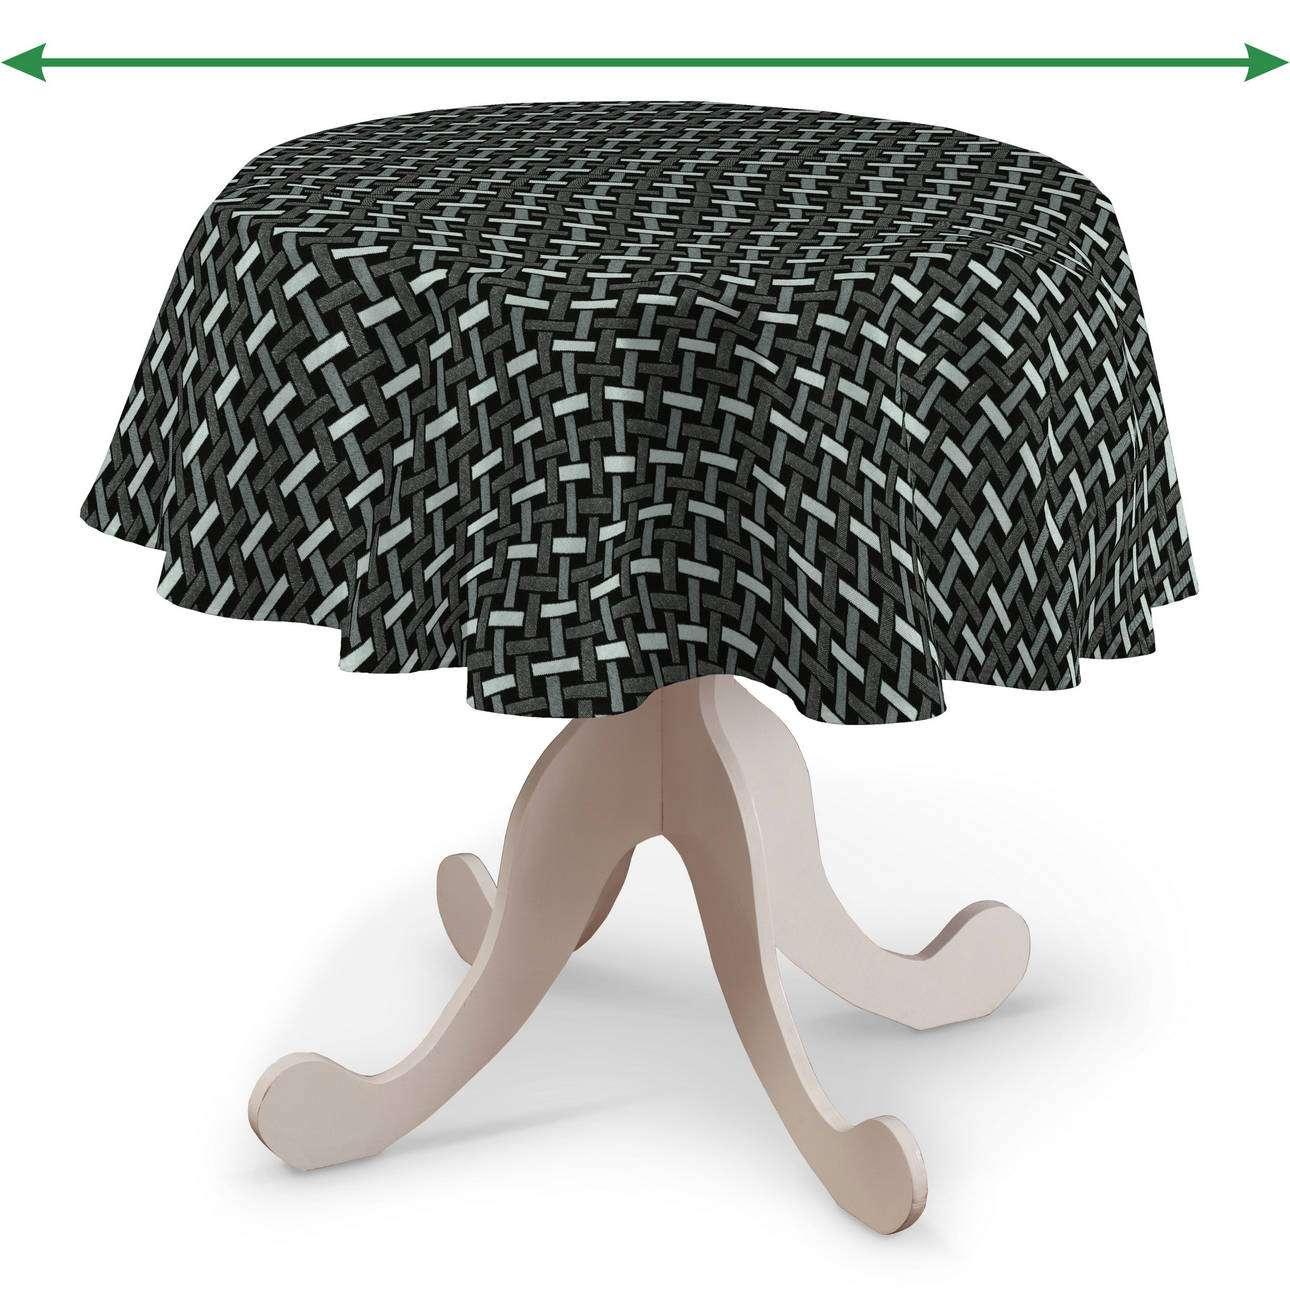 Round tablecloth in collection Black & White, fabric: 142-87